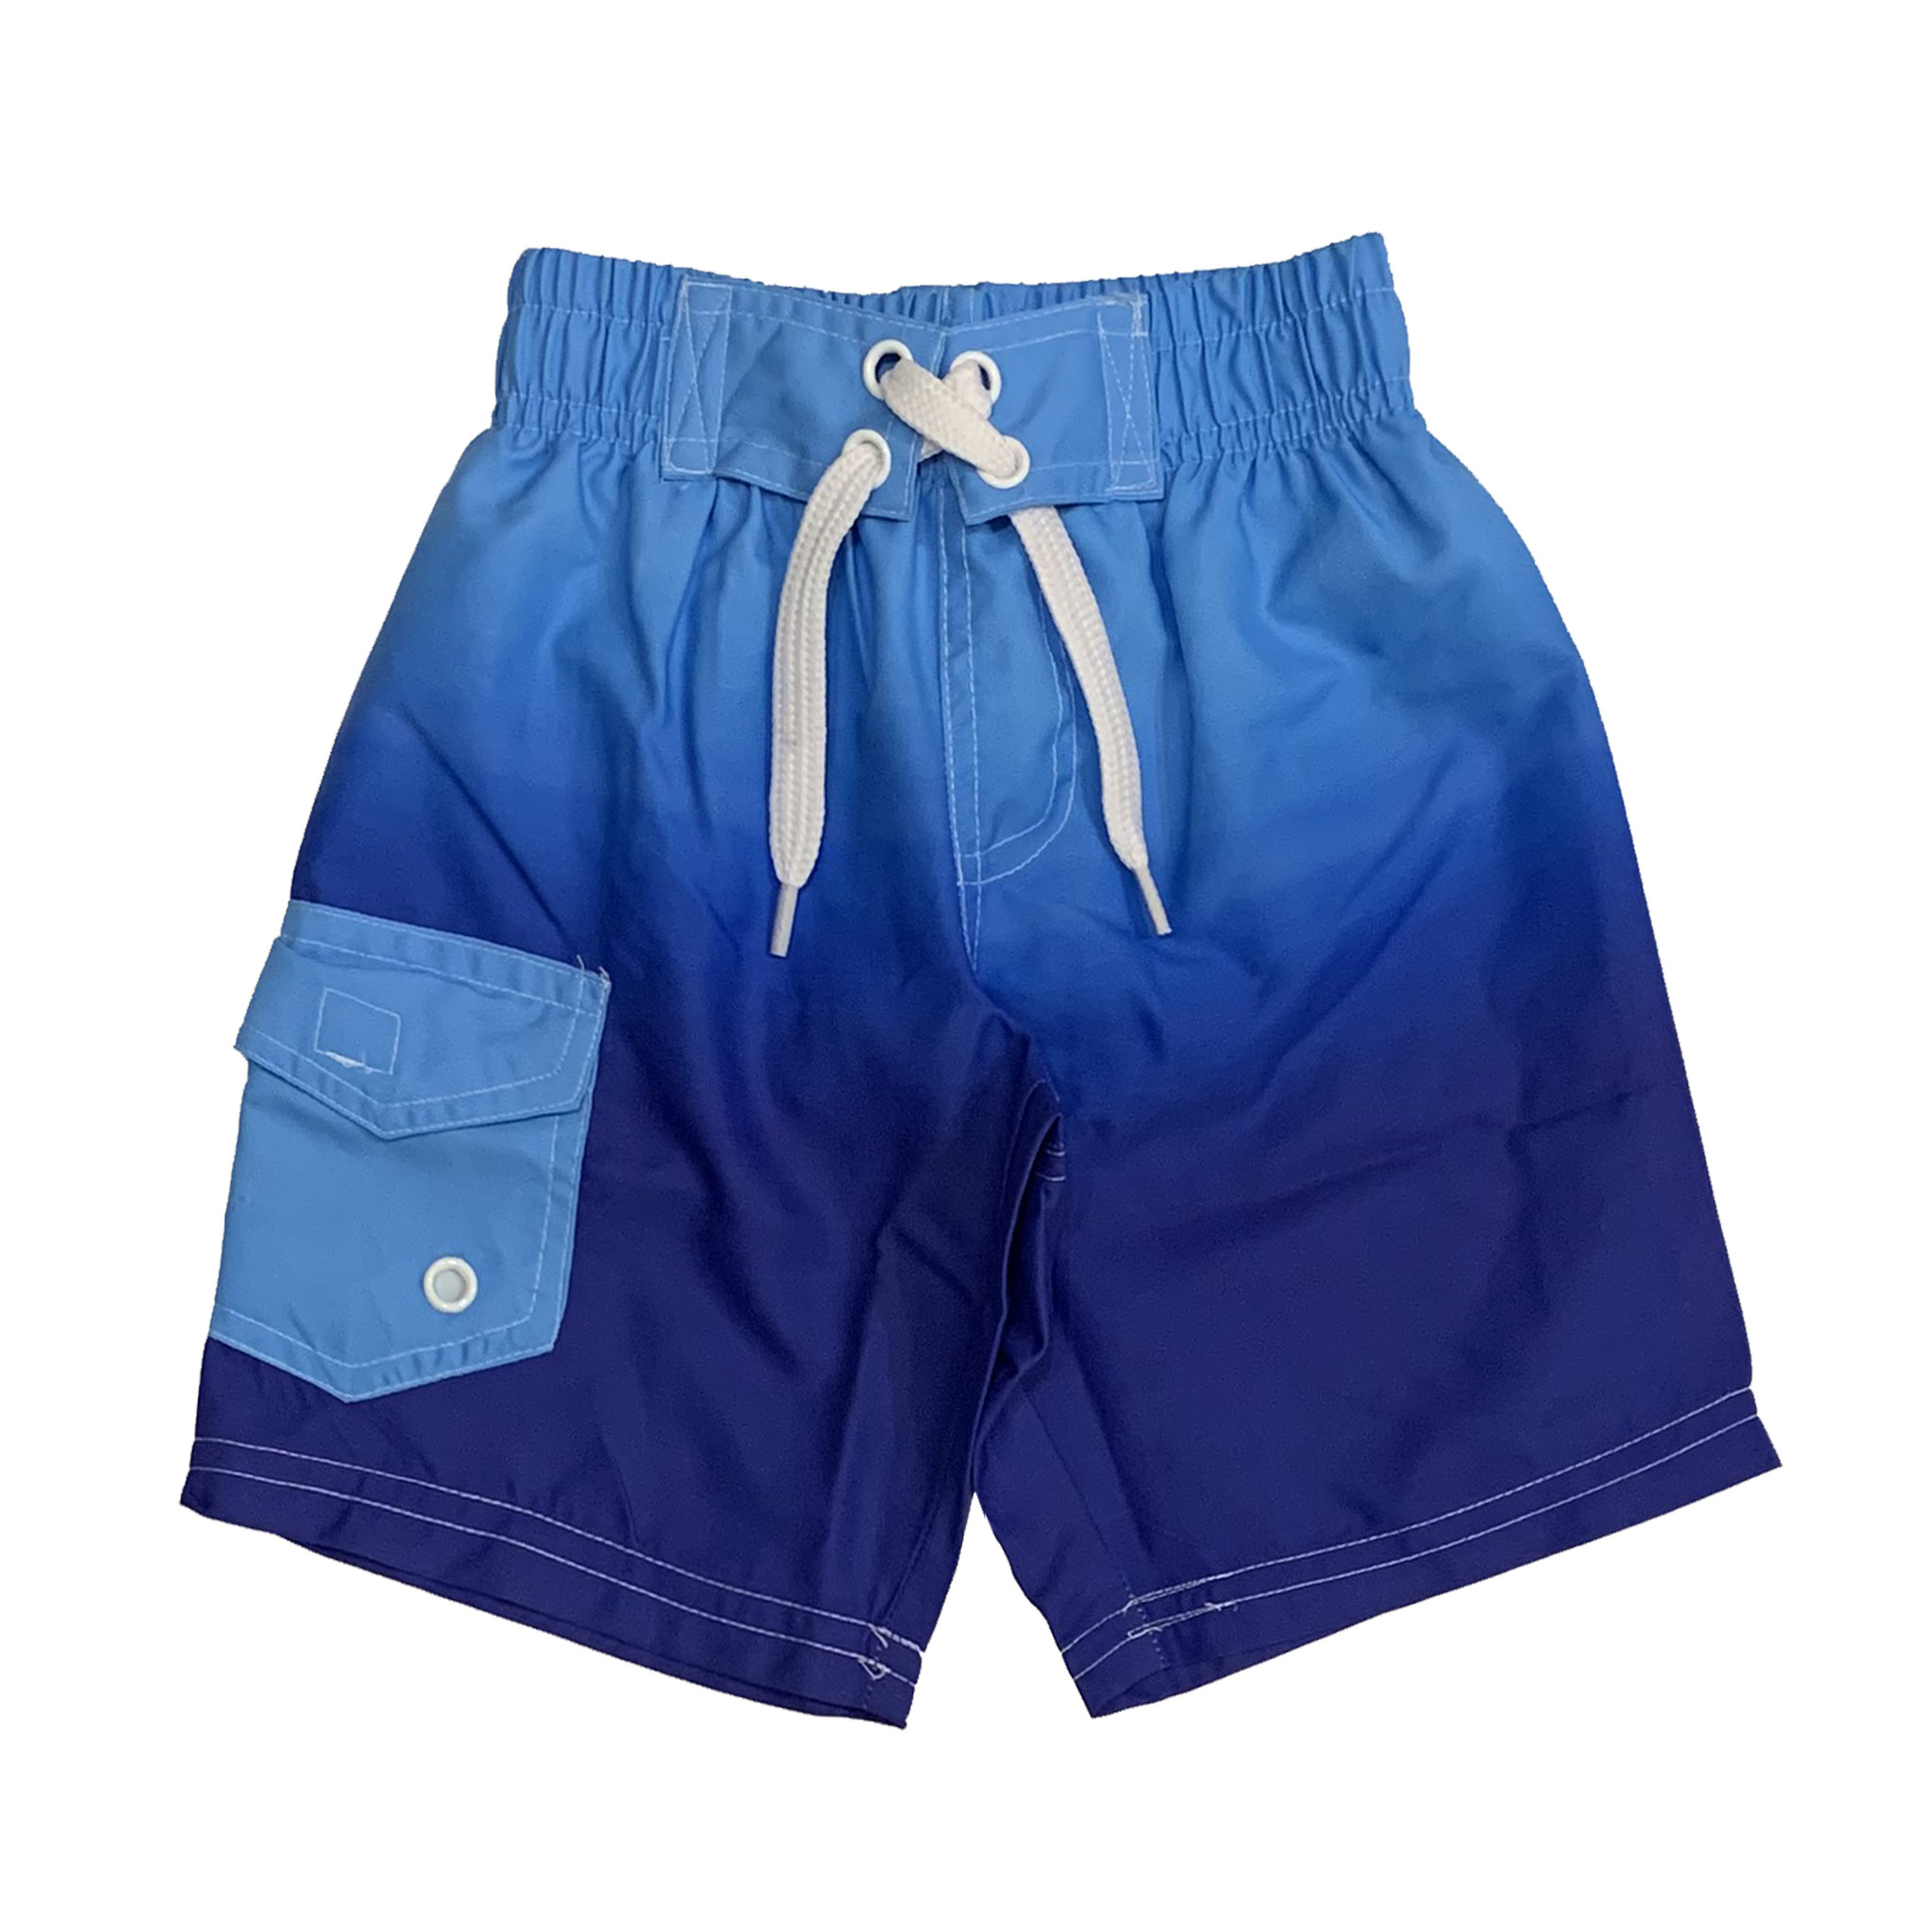 Mish Infant Blue Ombre Swimsuit